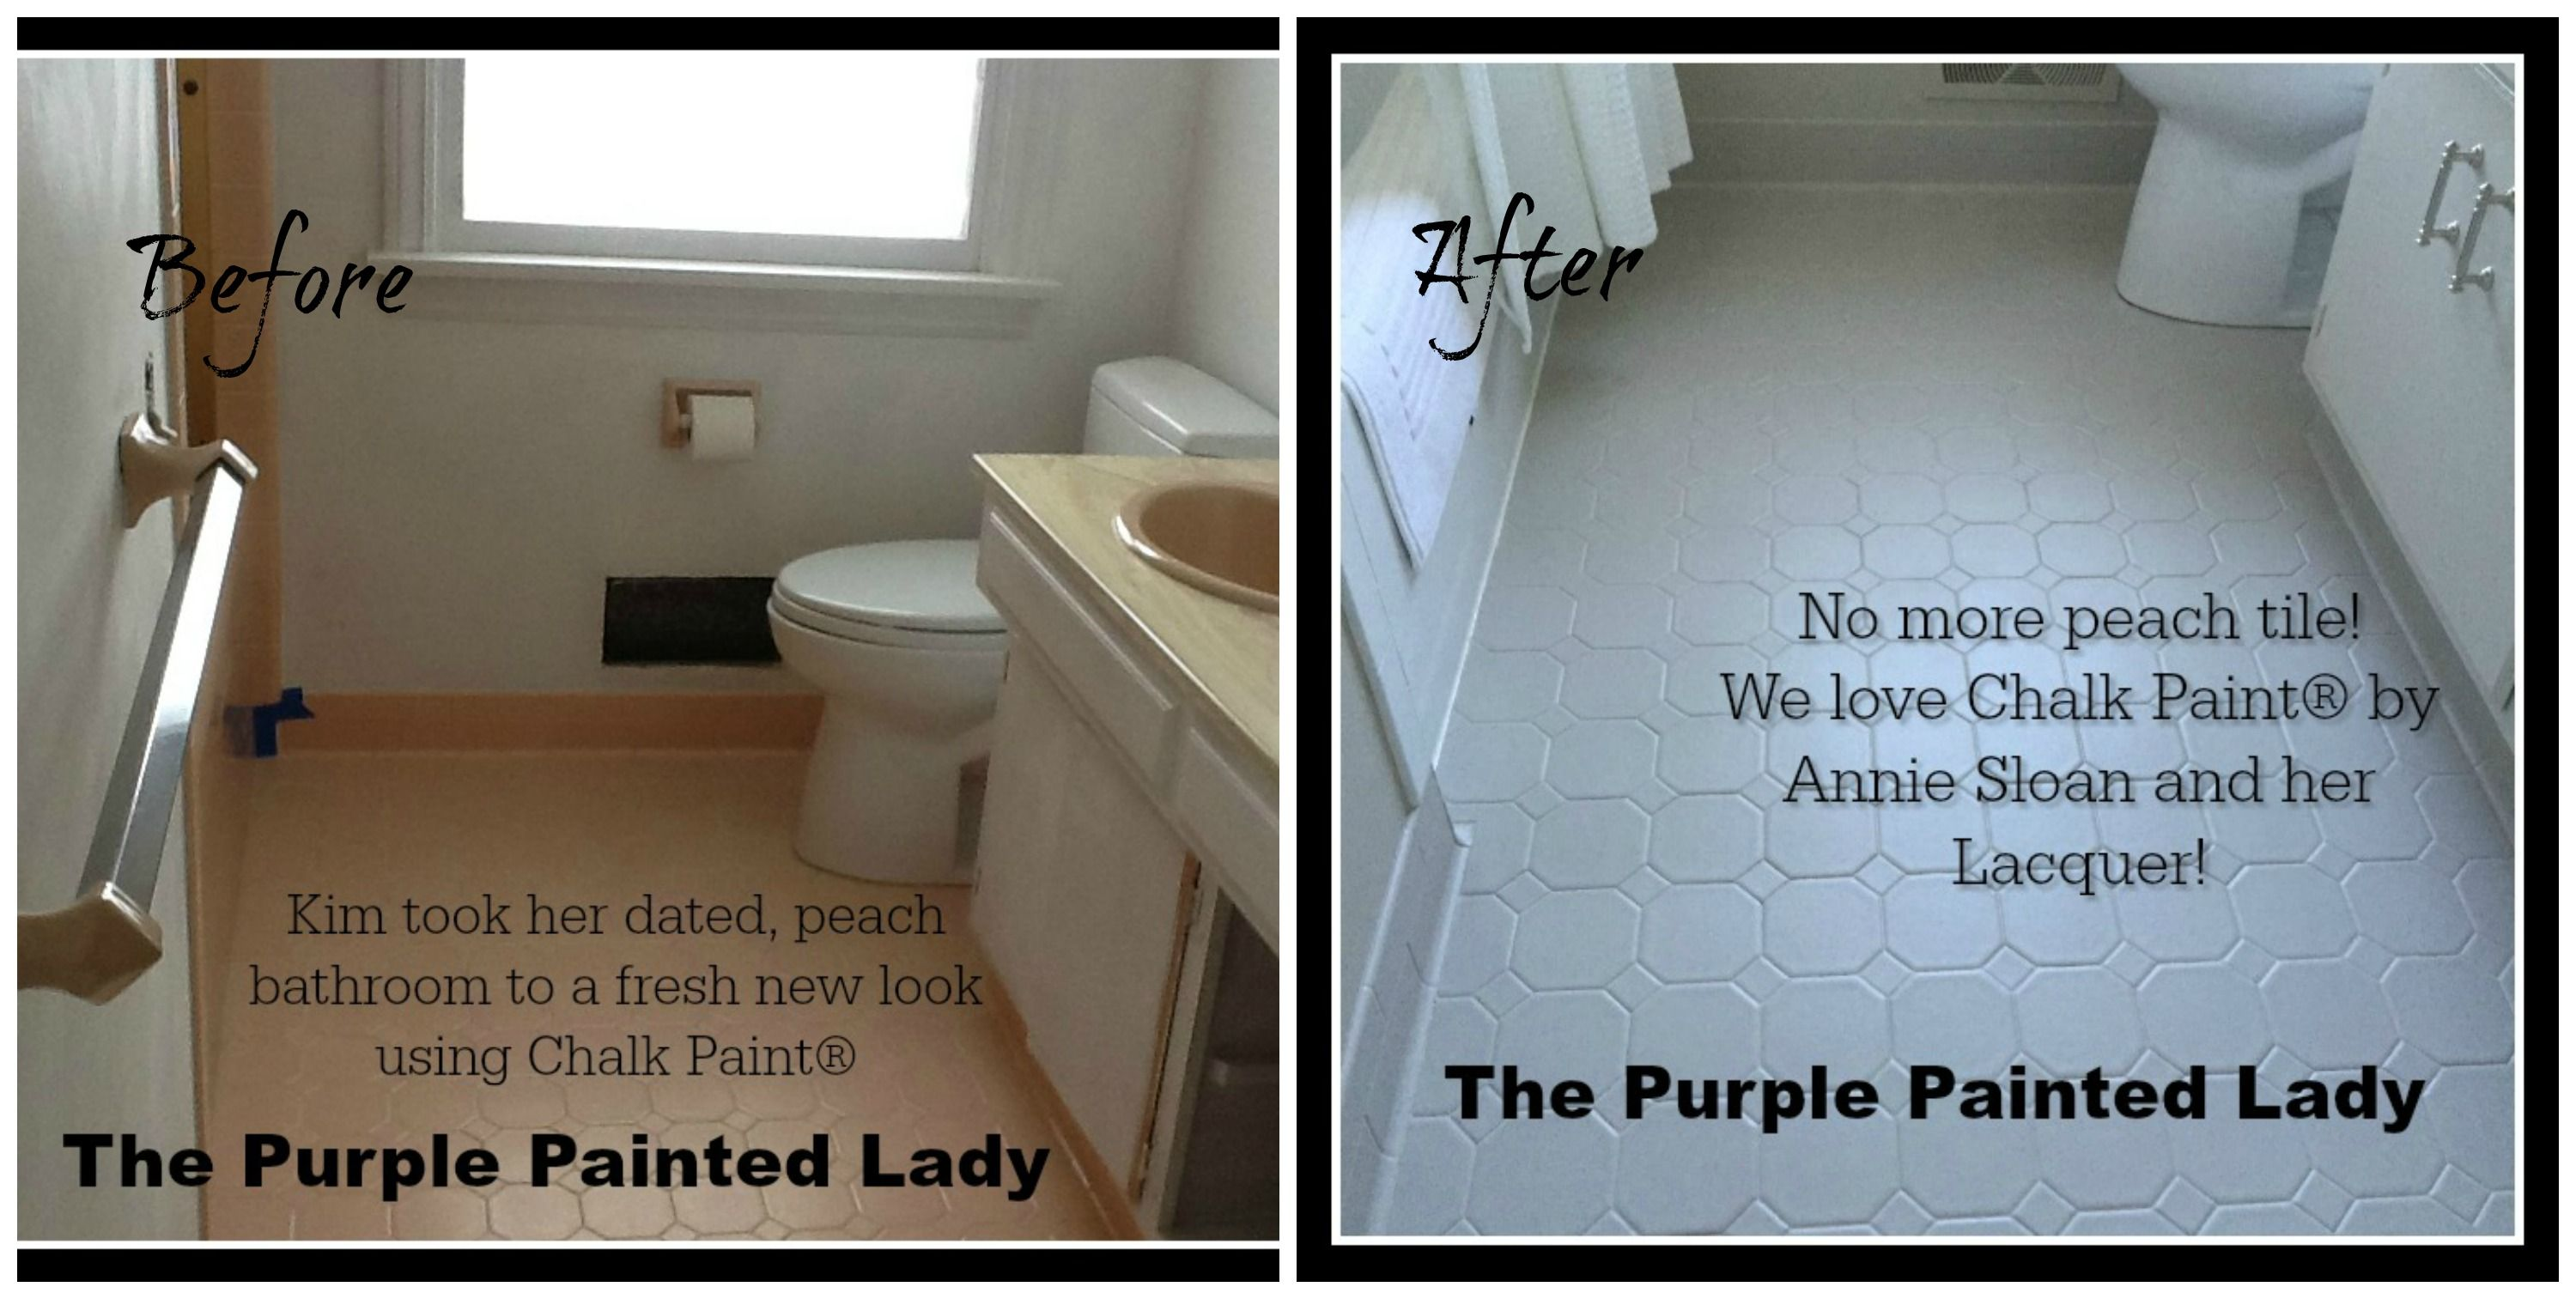 Painting Tile In The Bathroom With Chalk Paint Painted Bathroom Floors Painting Bathroom Tiles Painting Tile